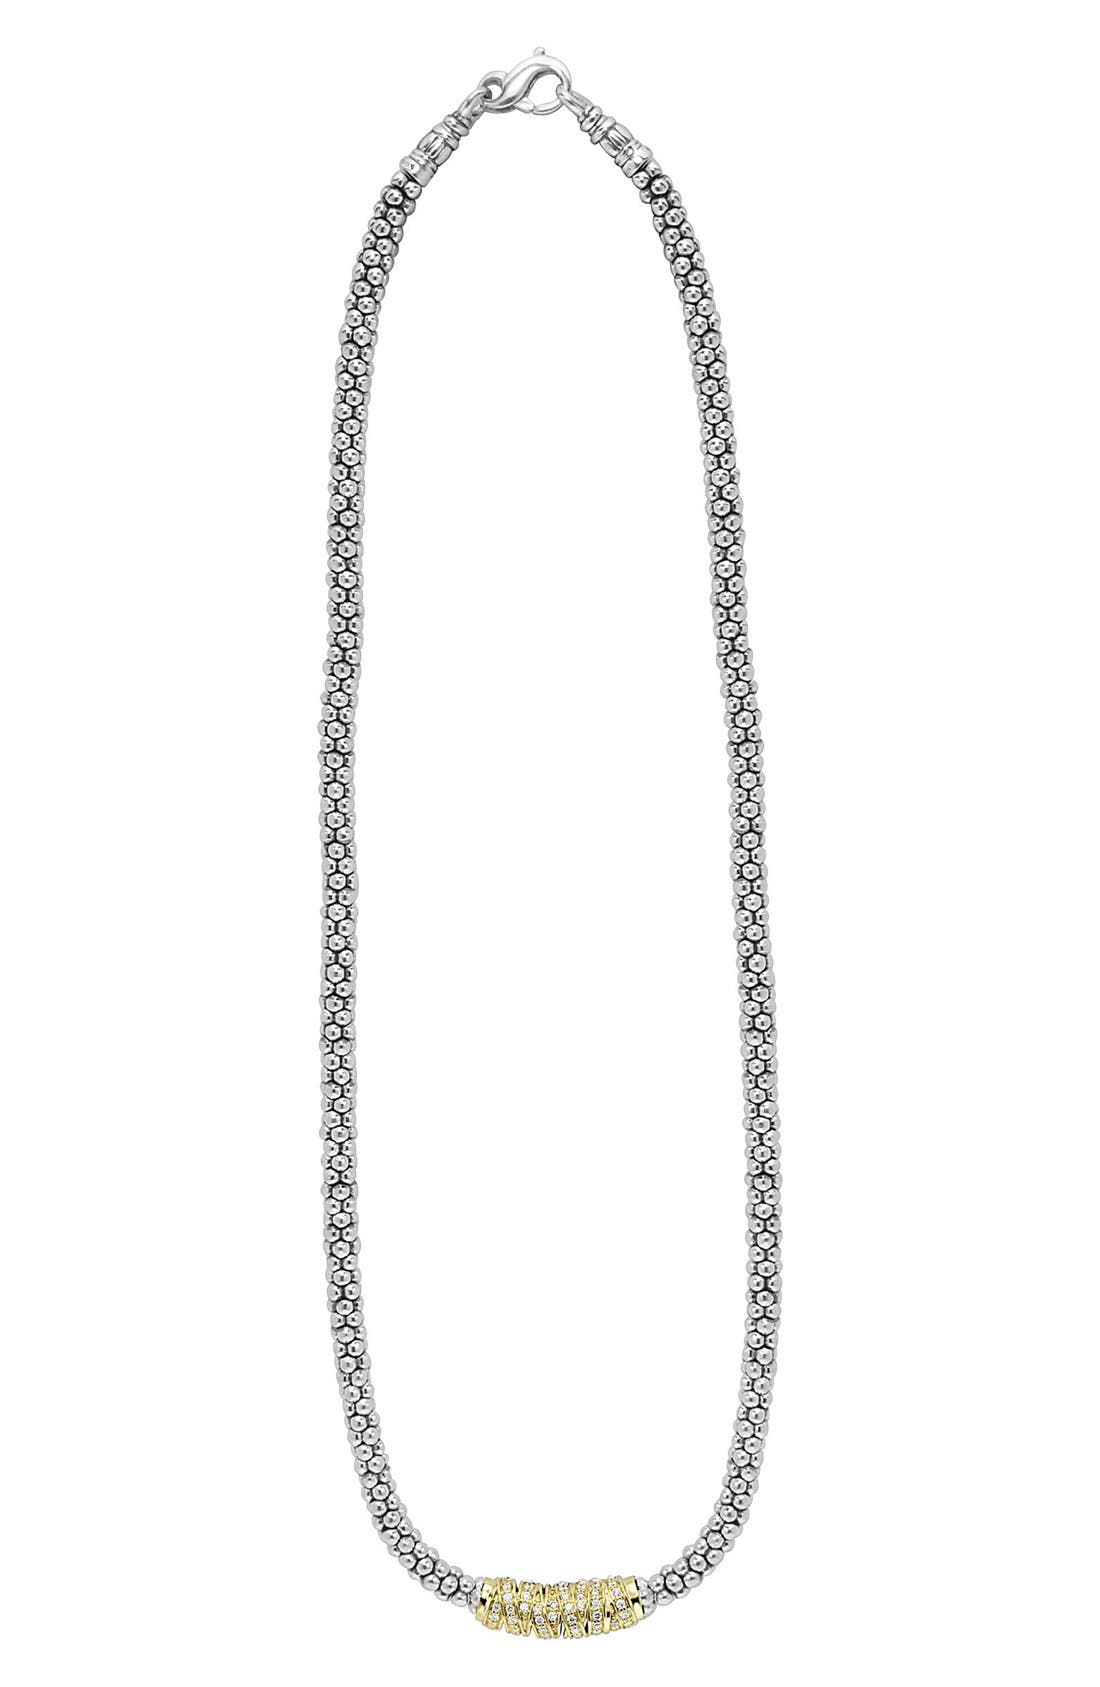 Alternate Image 1 Selected - LAGOS Embrace Rope Necklace (Online Exclusive)